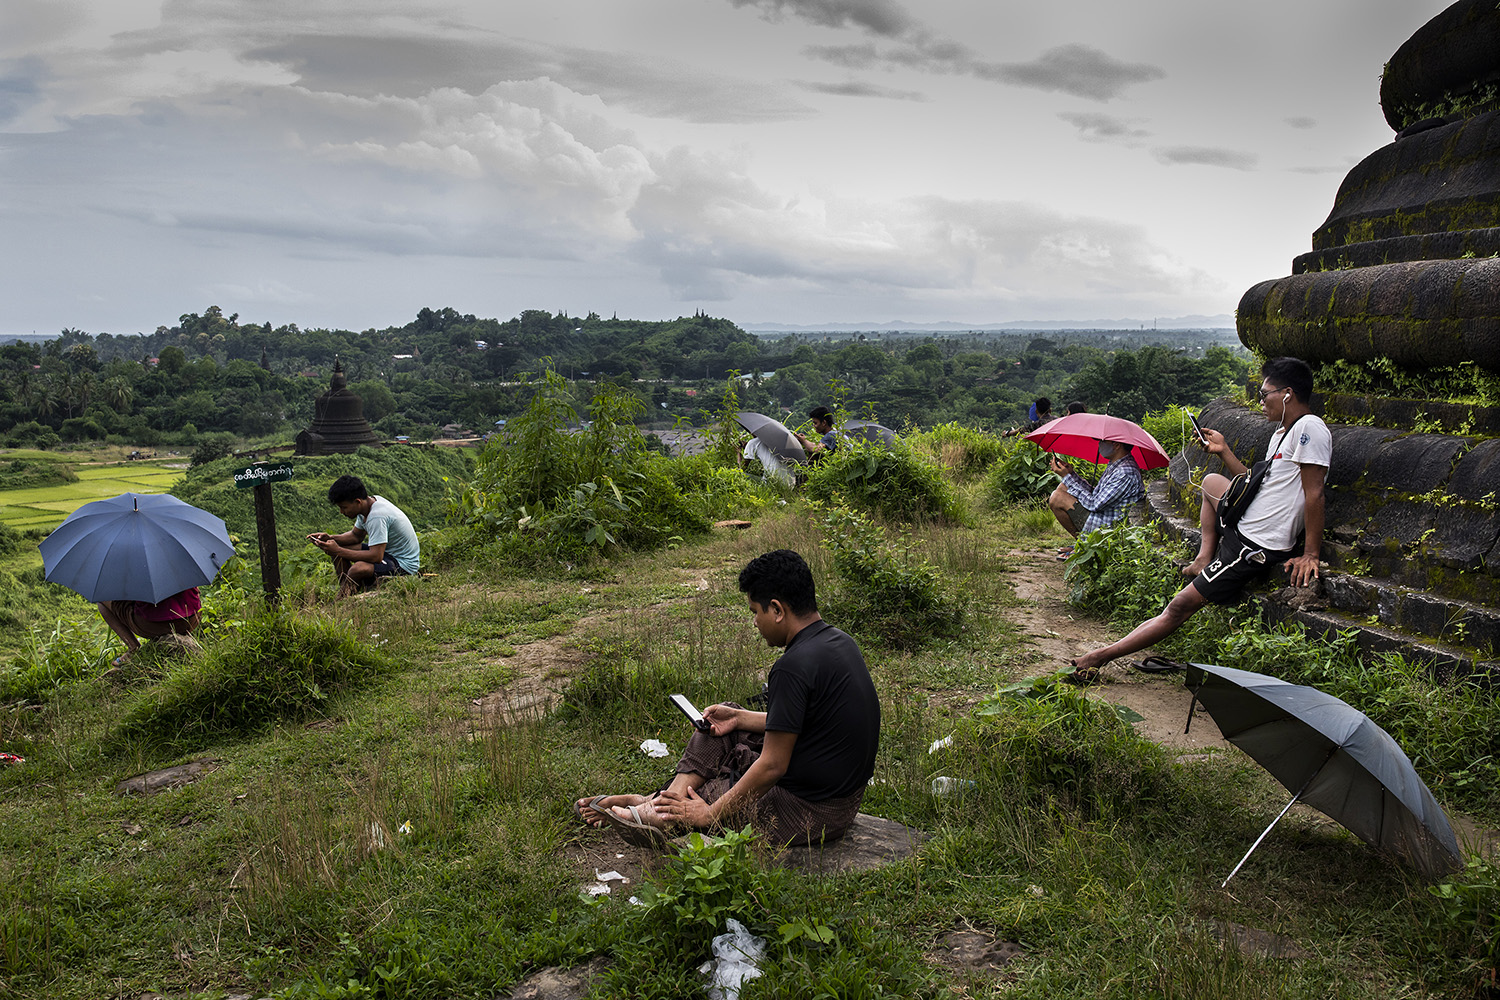 People sit on a hill to search for a 3G signal in Mrauk-U, Myanmar, on Aug. 20. The government has blocked high-speed internet in the township since June 2019.